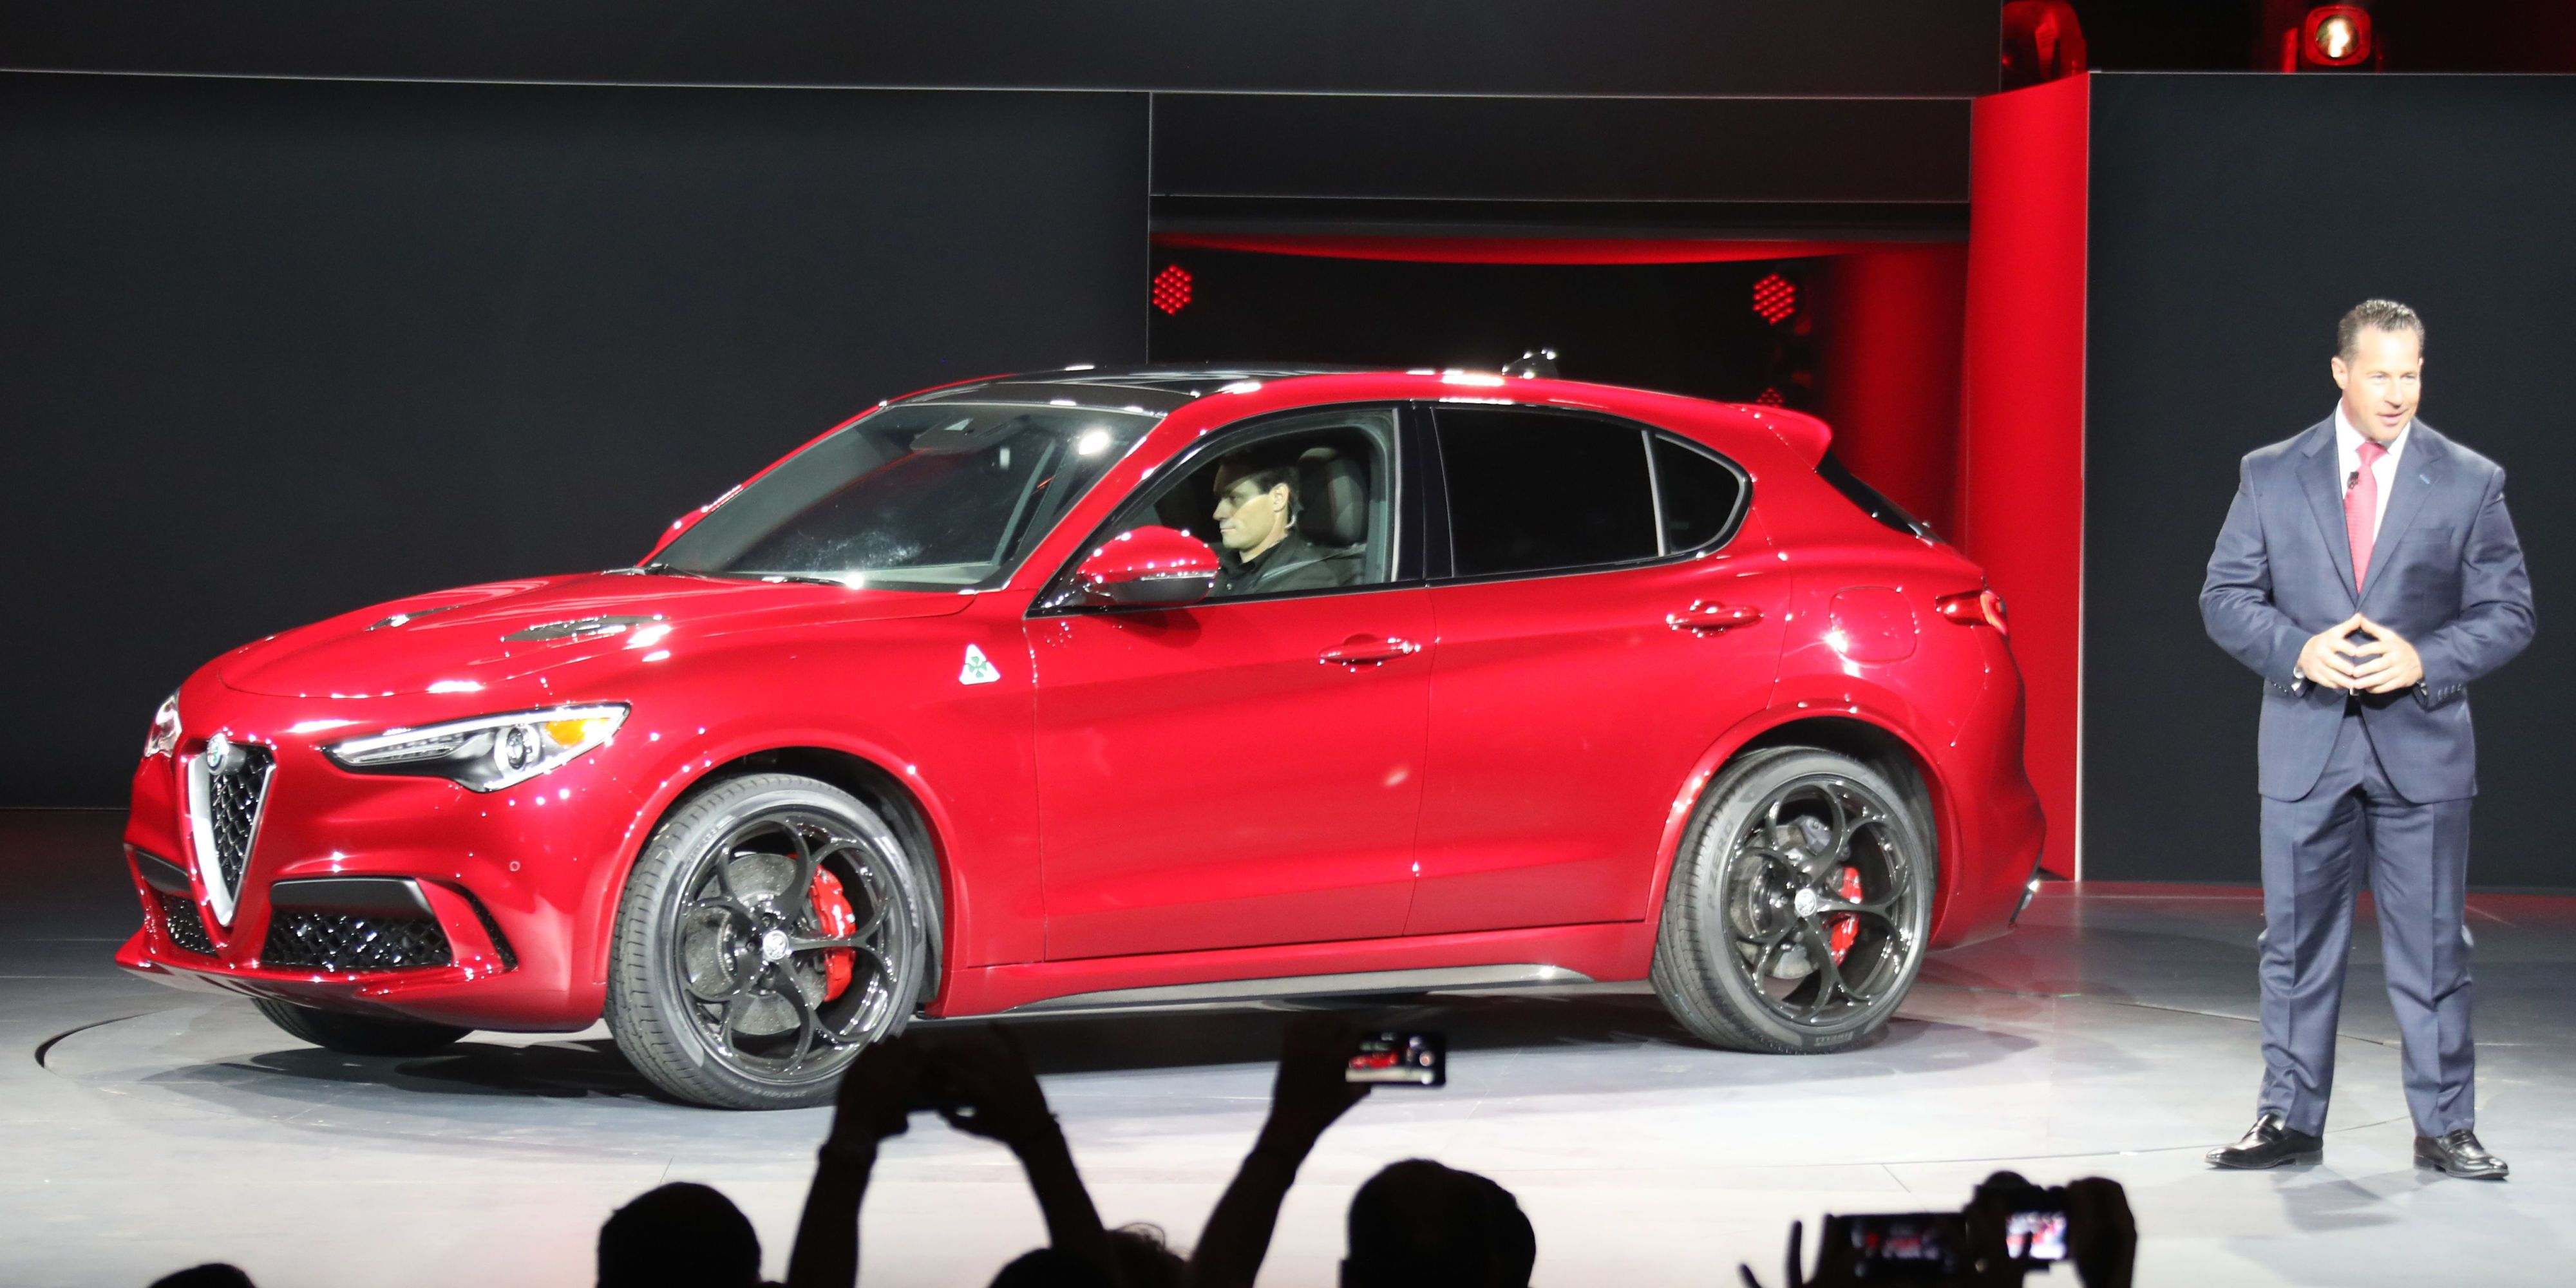 Alfa Says the Stelvio Will Be the Fastest SUV at the Nurburgring